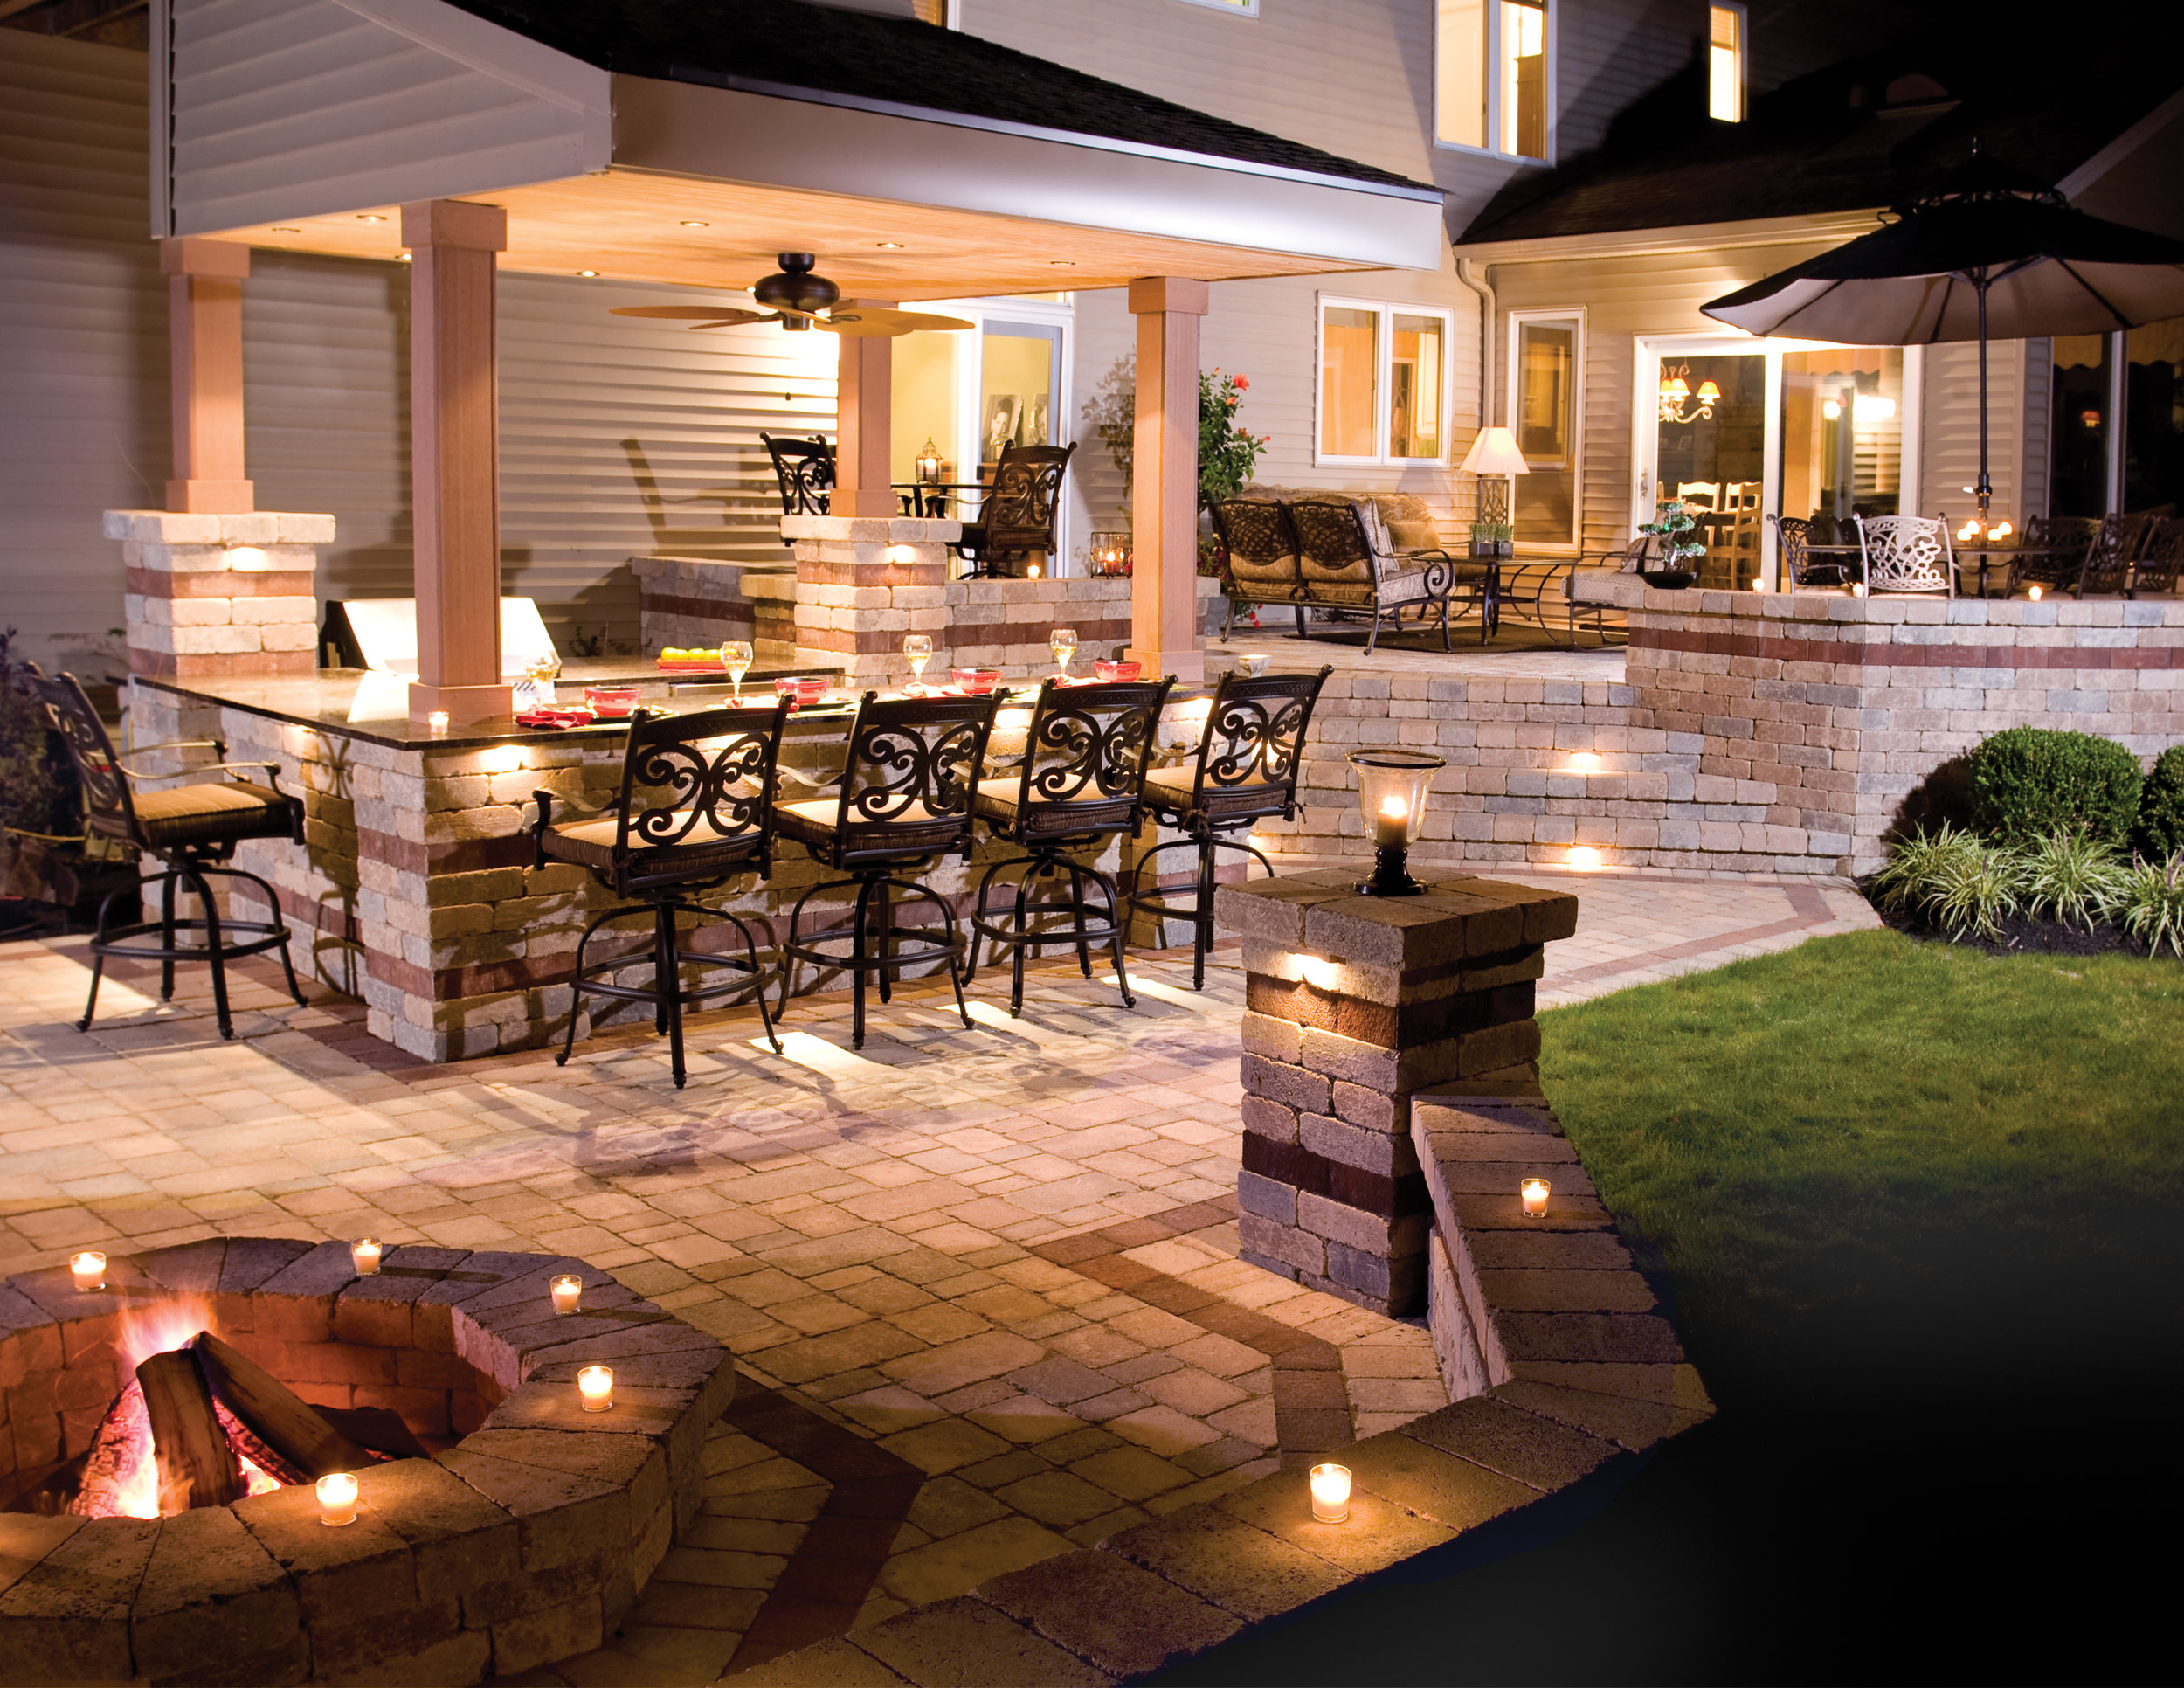 Perfect Outdoor Lighting Solutions for Outdoor Dining Areas in Lebanon, PA